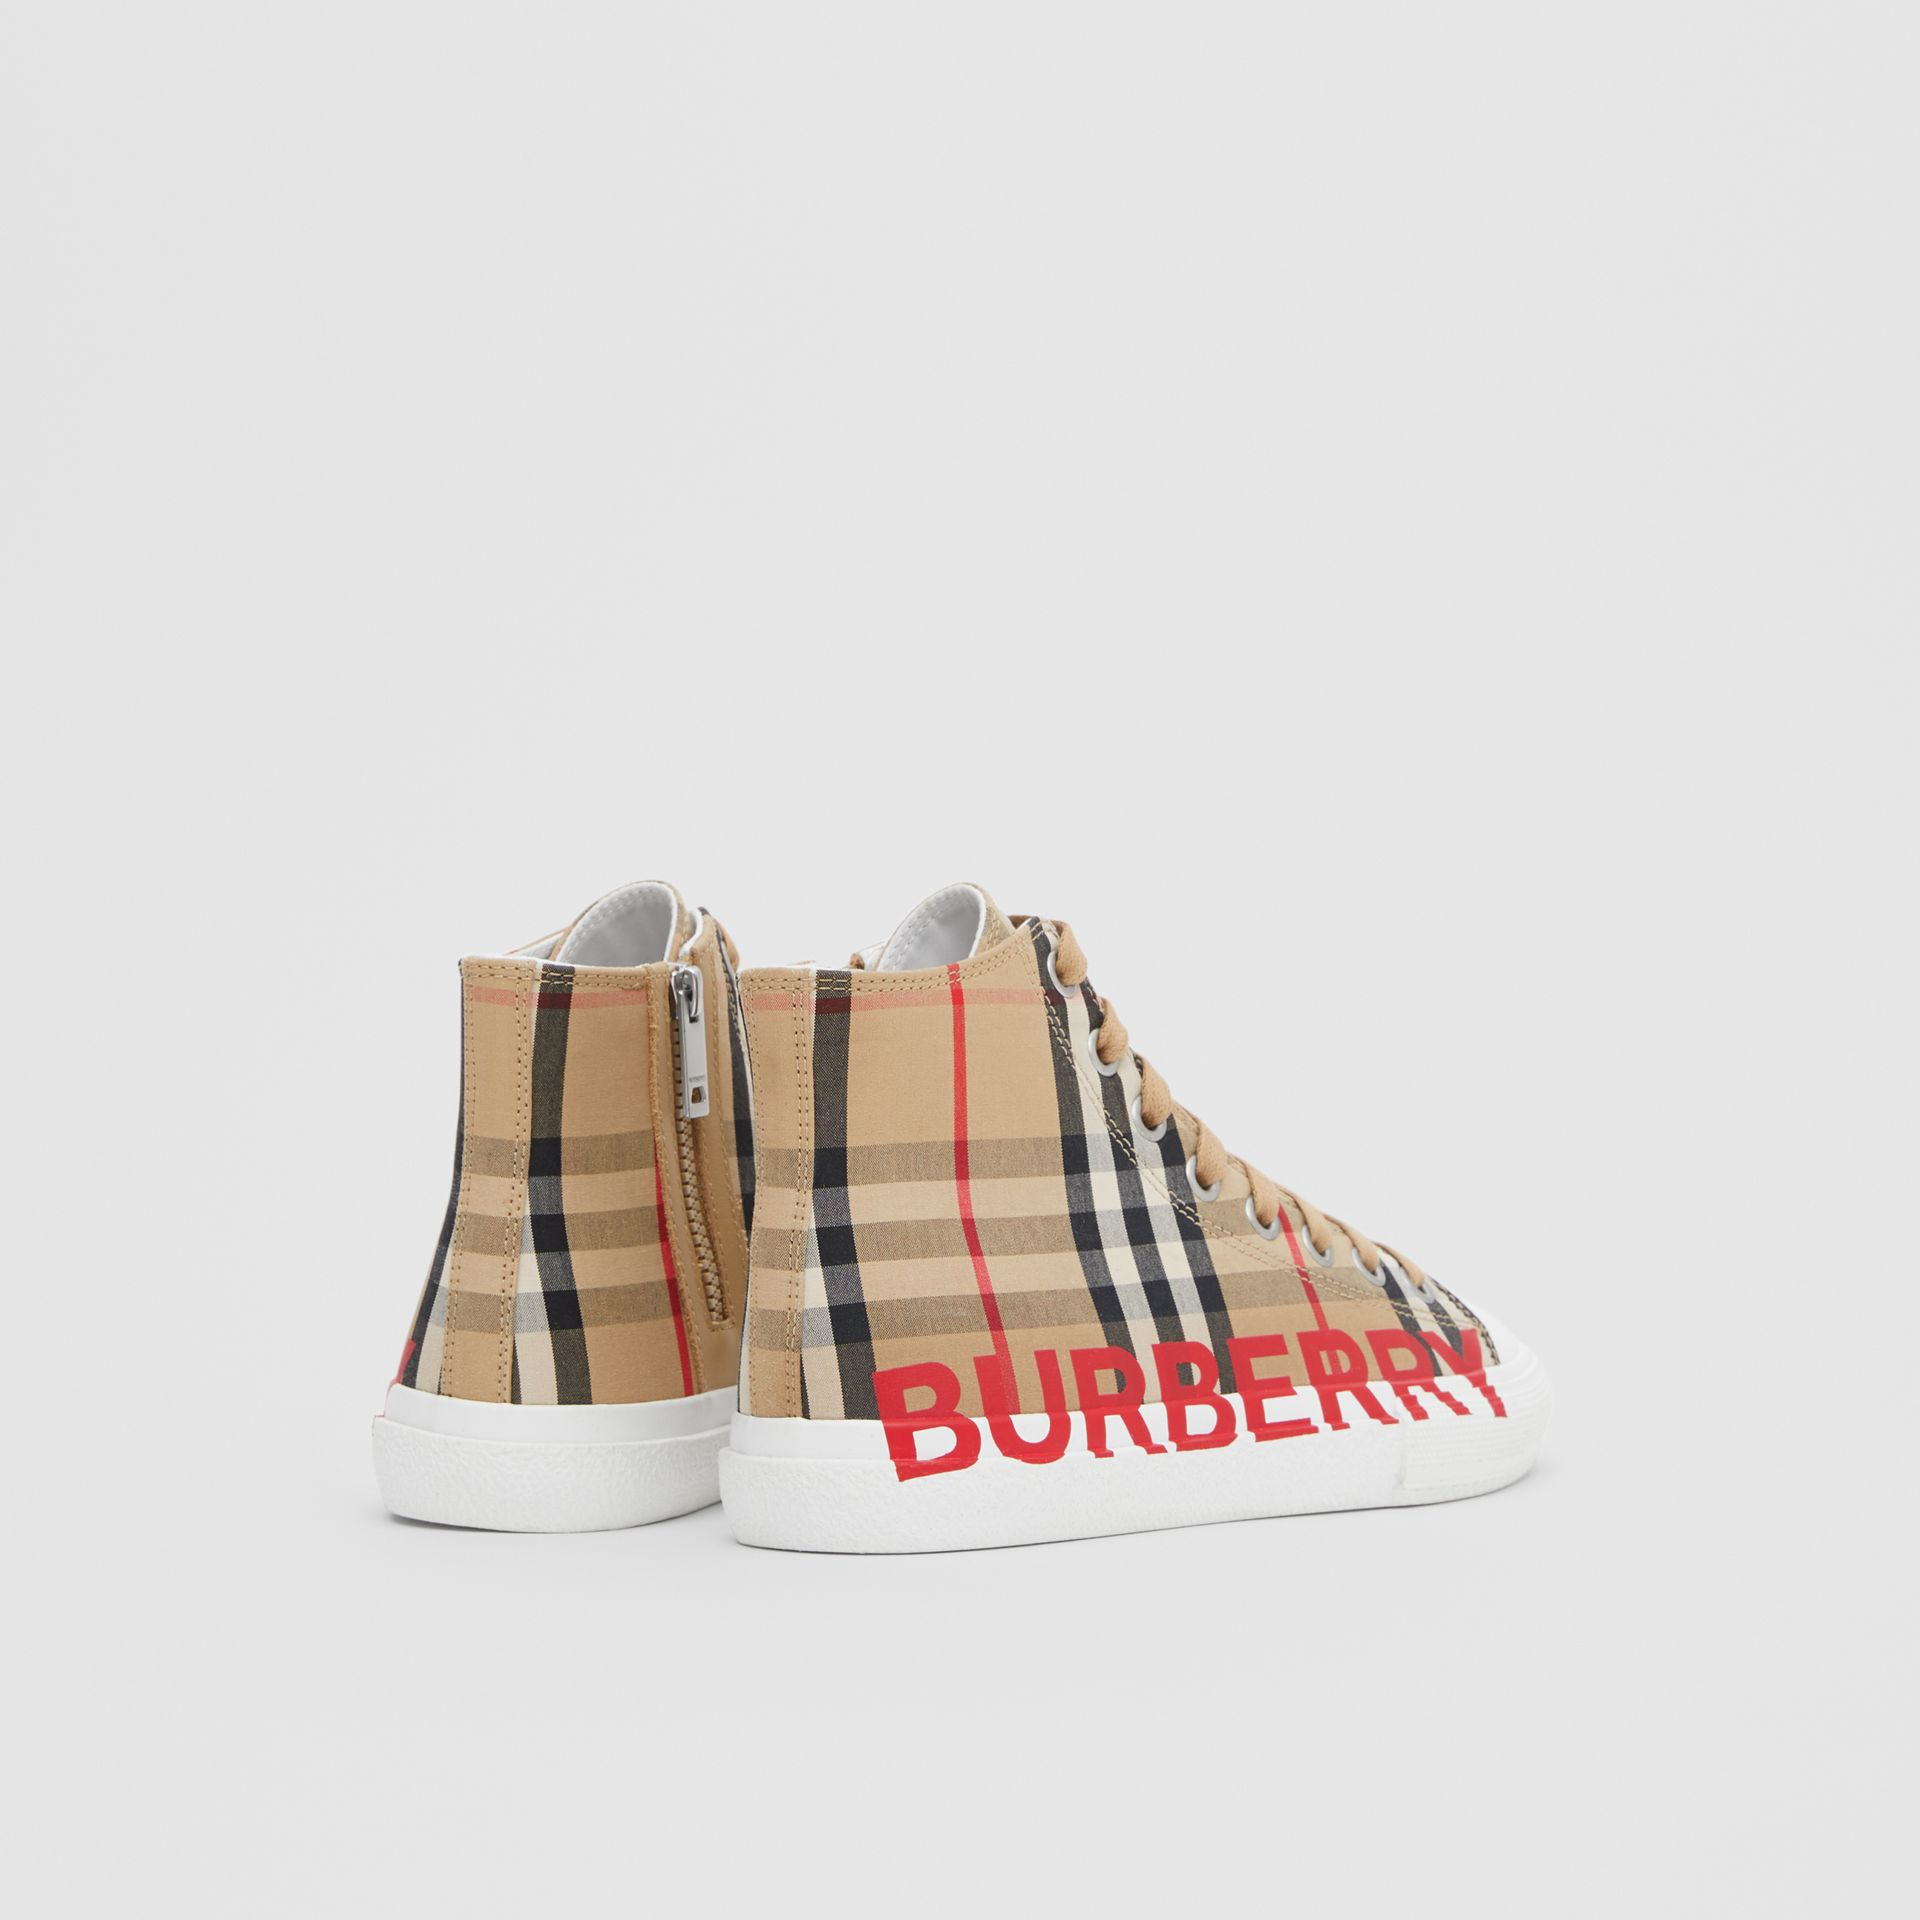 Logo Print Vintage Check High-top Sneakers in Archive Beige - Children | Burberry Hong Kong S.A.R - gallery image 2